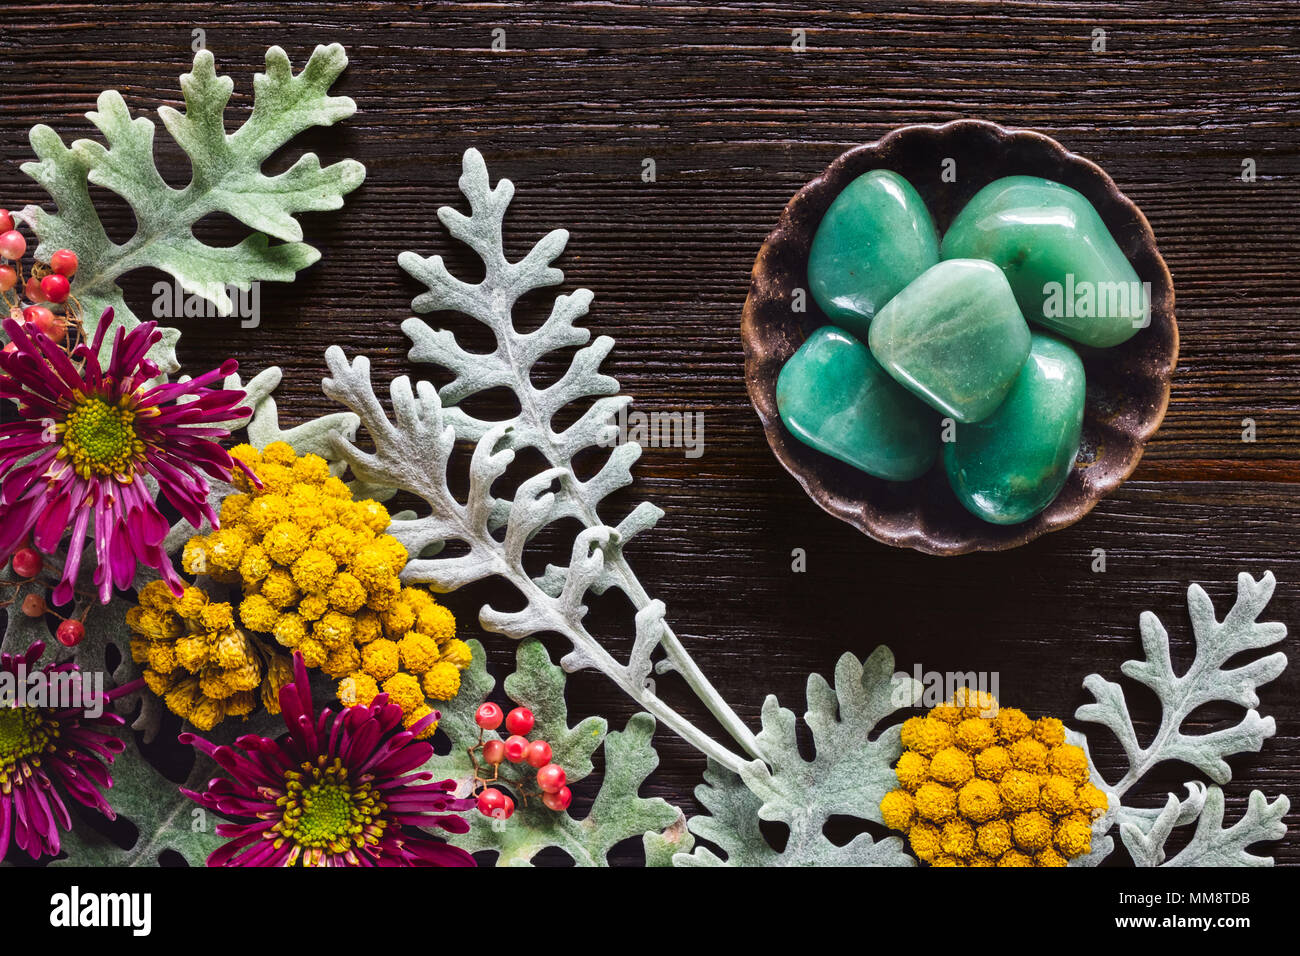 Green Aventurine Stones with Dusty Miller, Clustered Everlasting and Chrysanthemums on Dark Table with Space for Copy - Stock Image